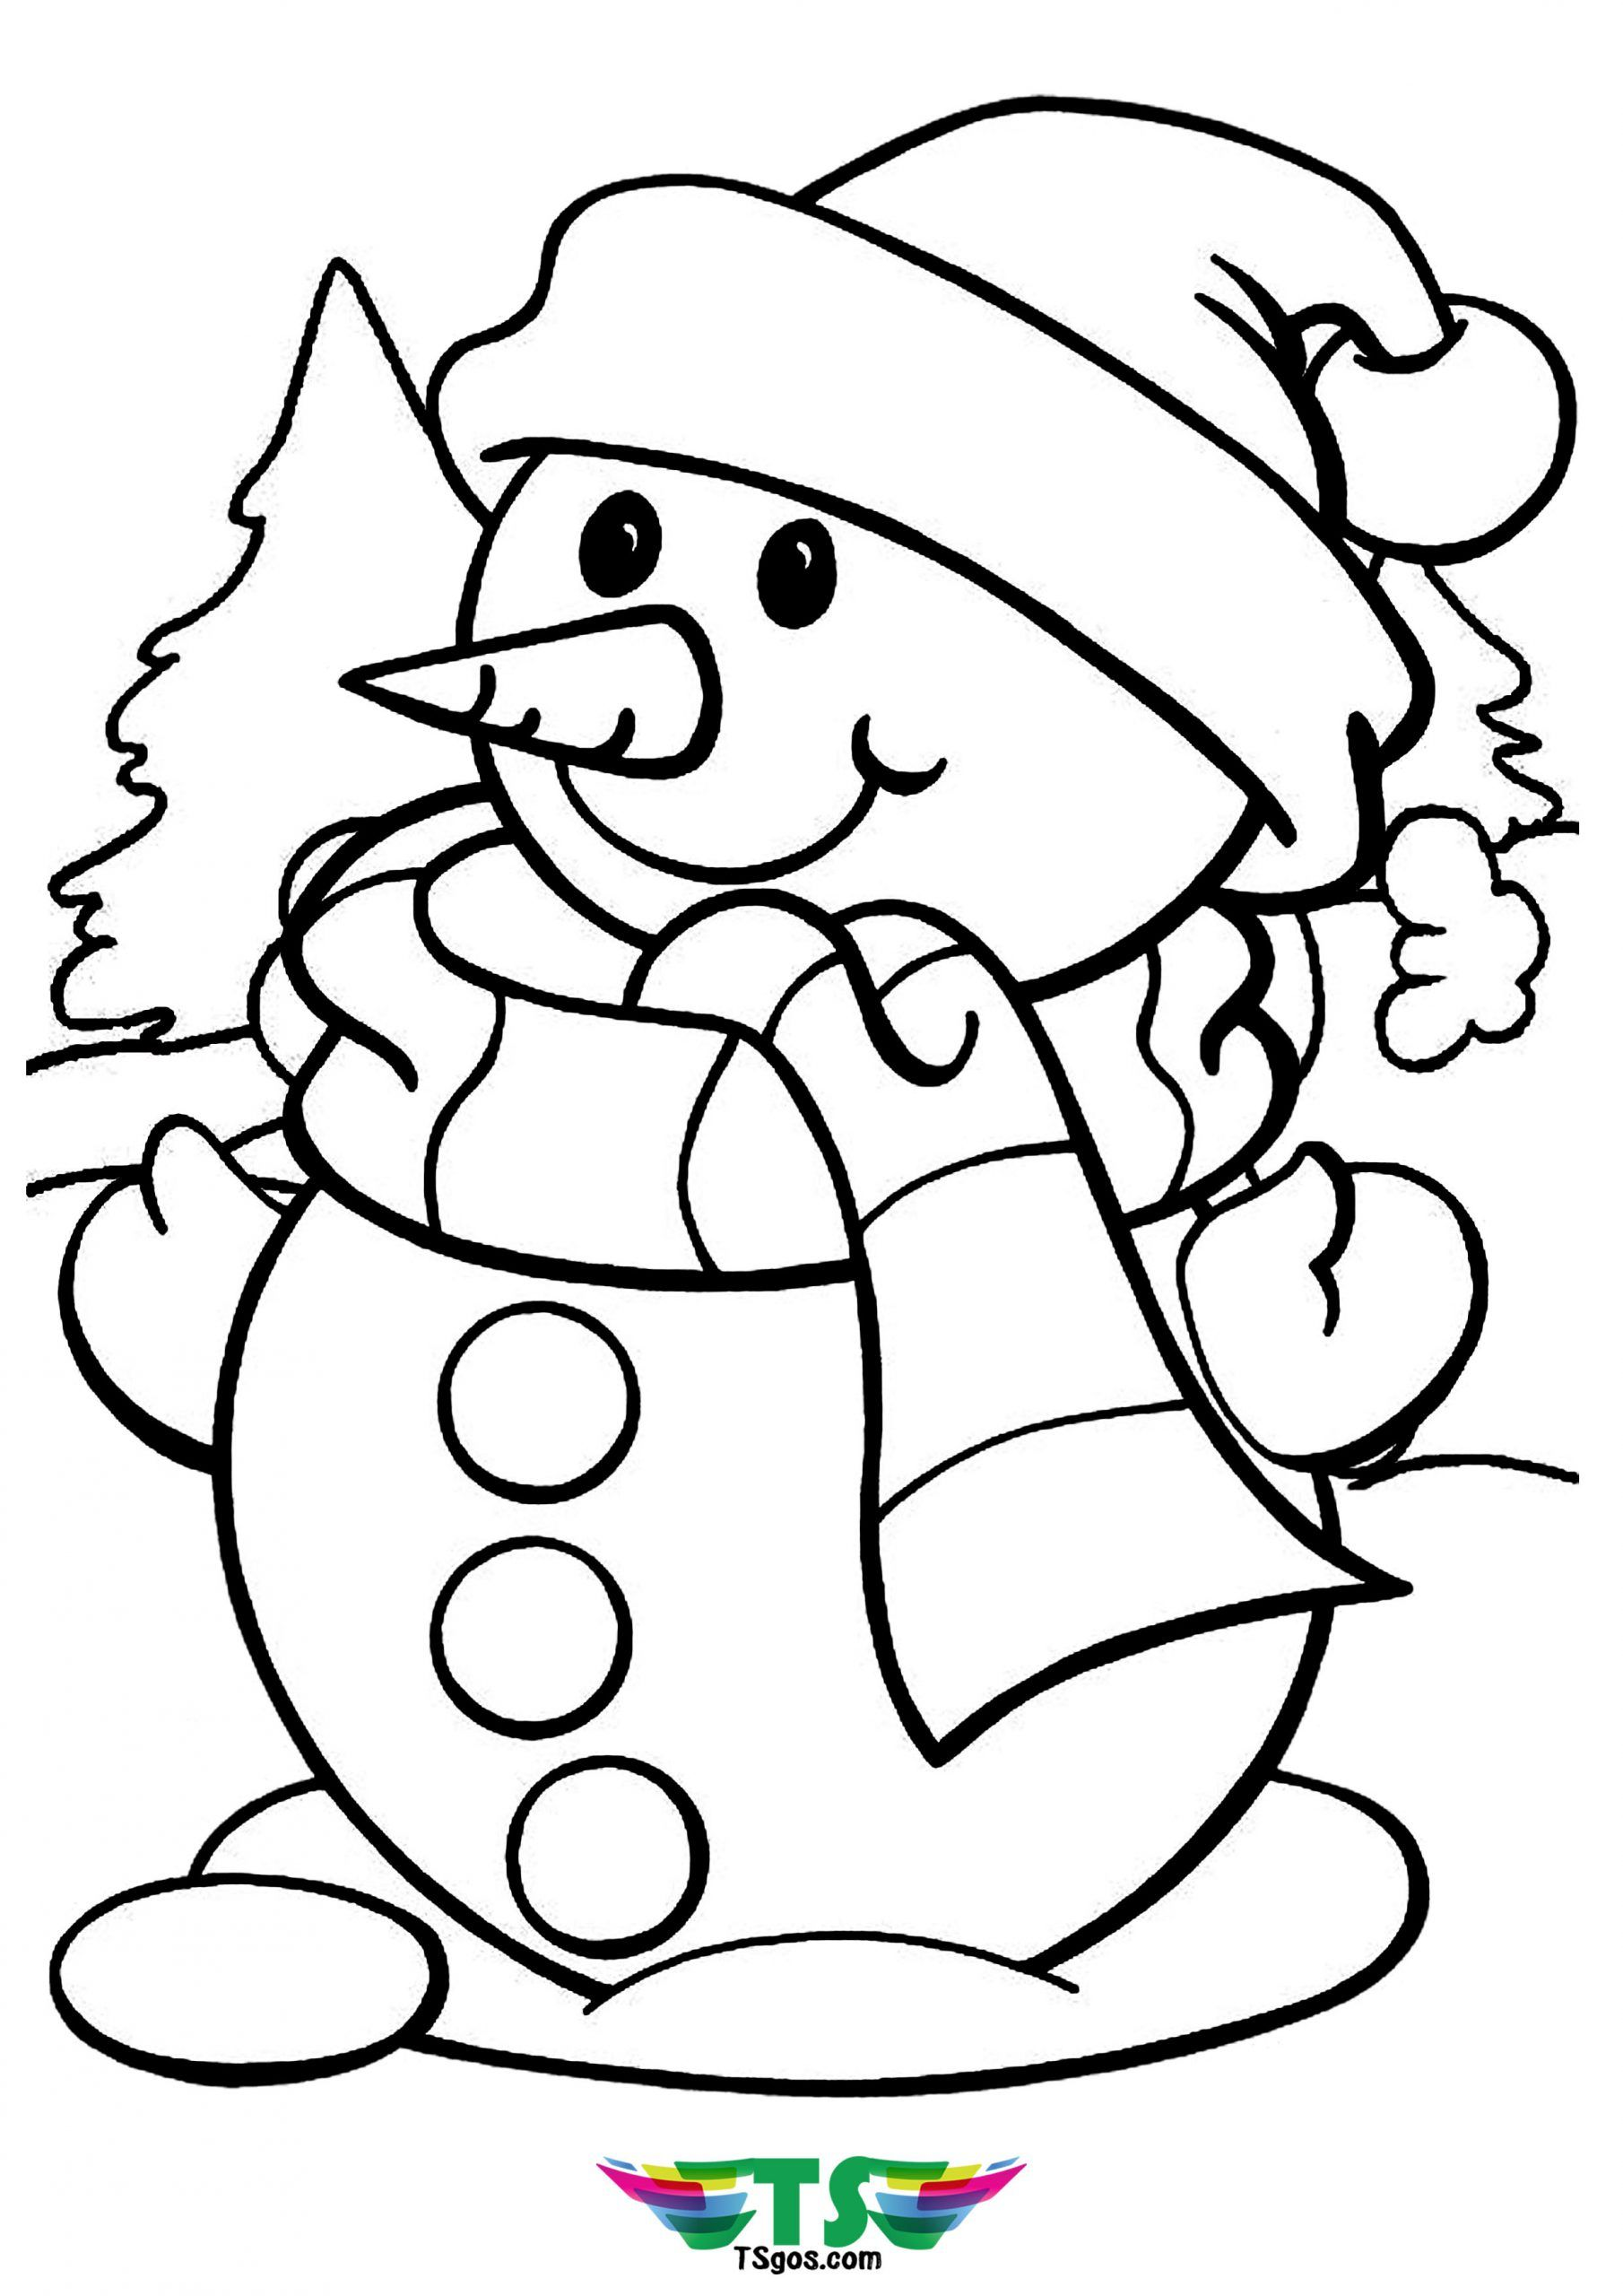 Winter Coloring Page For Kids Coloring Pages Winter Free Christmas Coloring Pages Snowman Coloring Pages